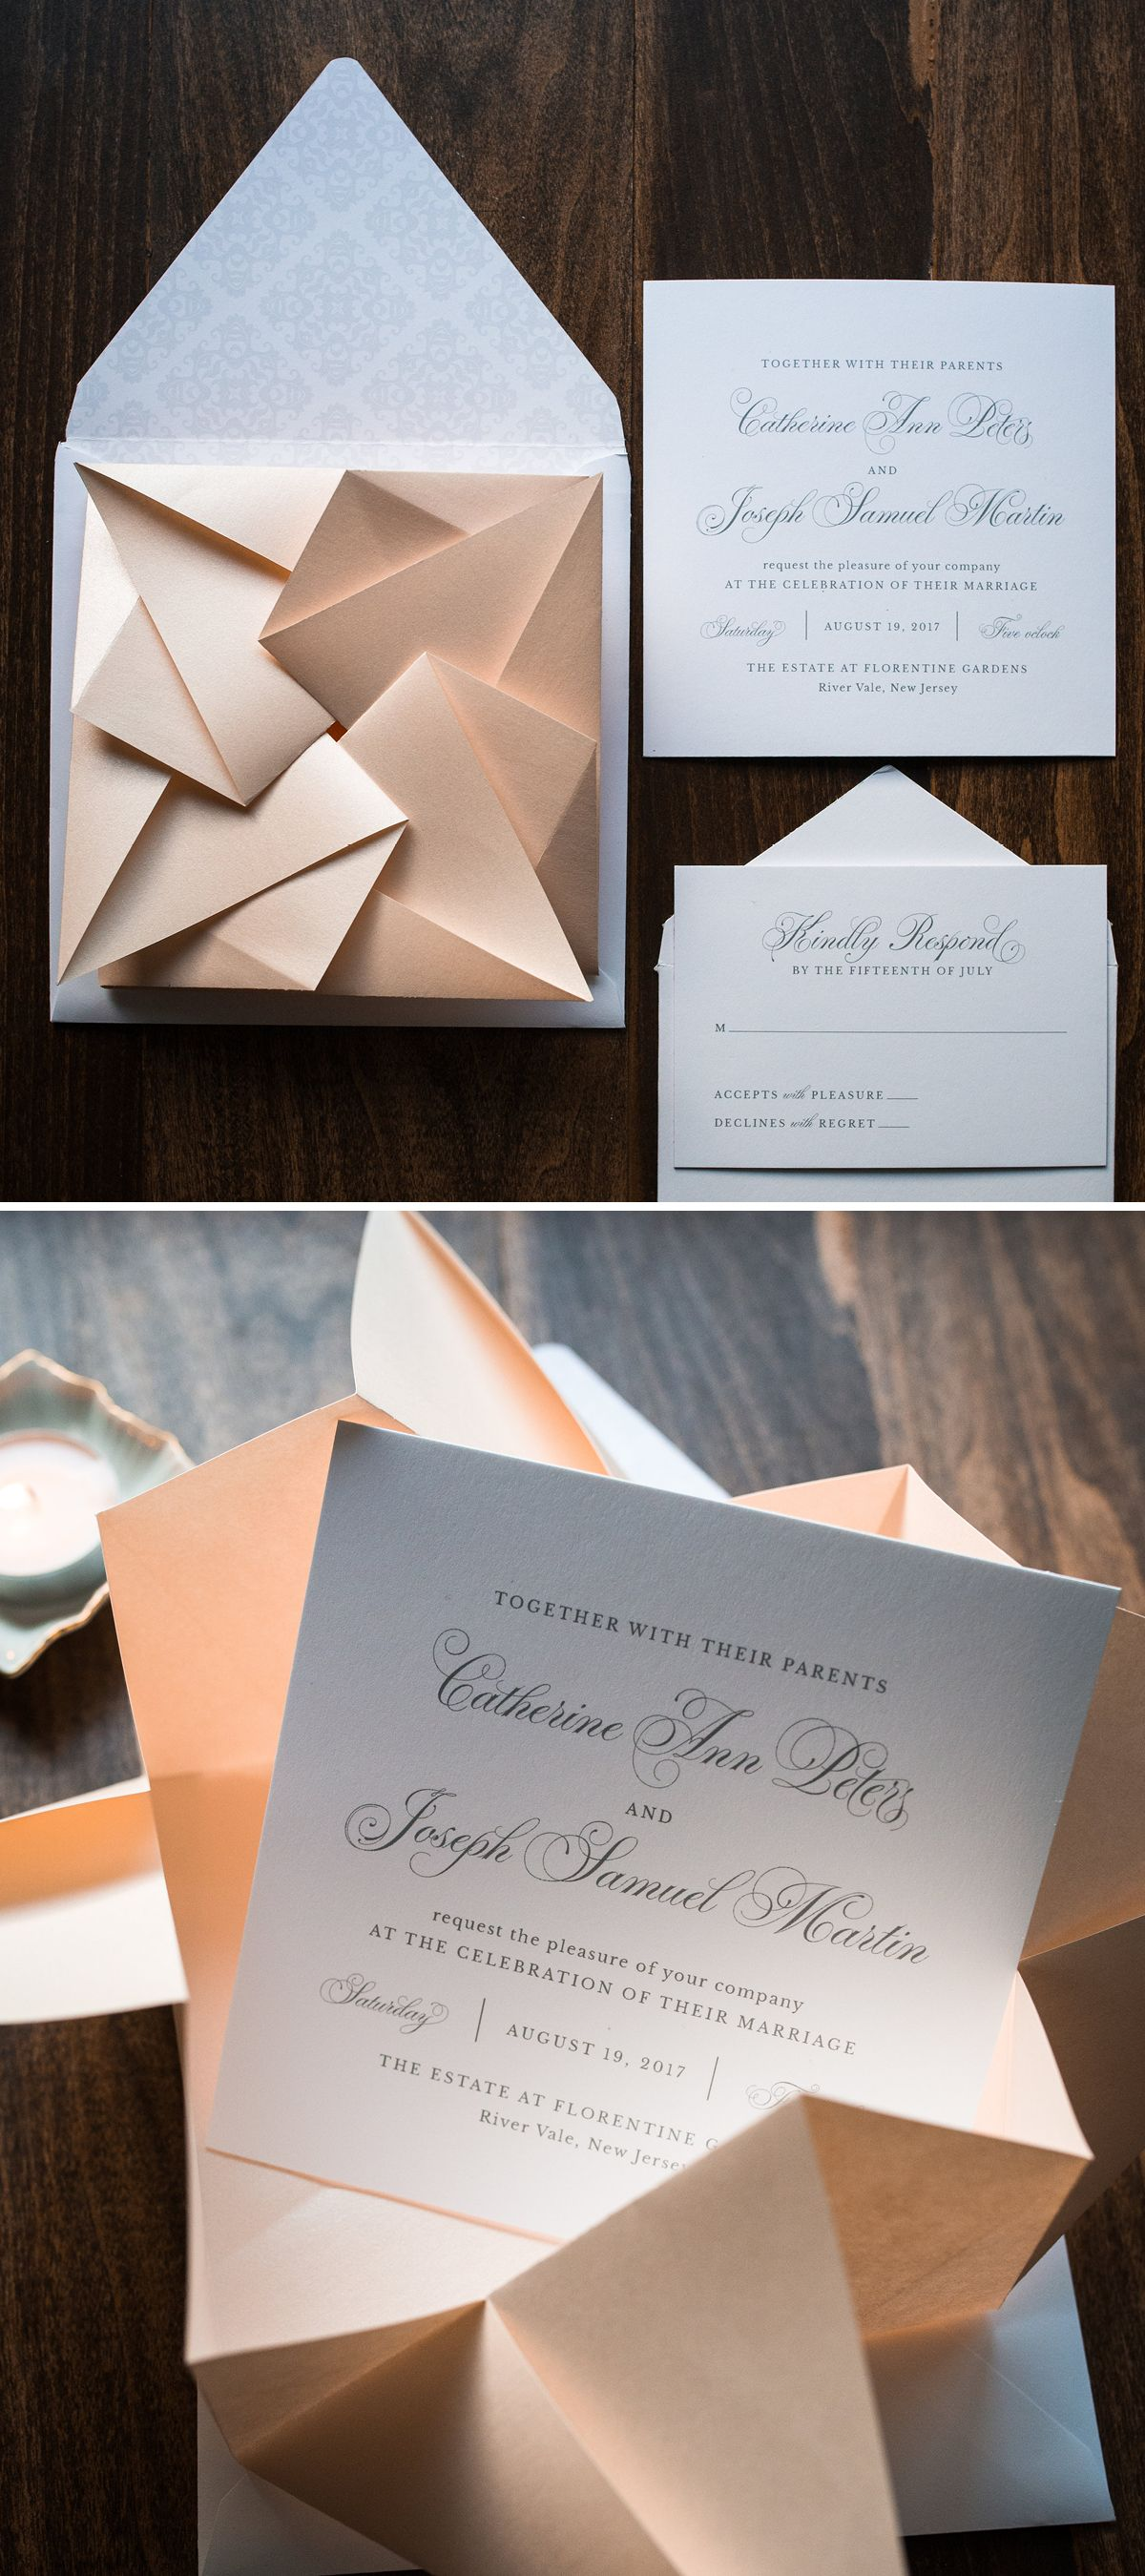 real simple unique wedding invitations%0A Unique Origami Wedding Invitation by Penn  u     Paperie  shown in shimmer  copper and black color palette    Invitations  u     Paper   Pinterest   Black  color